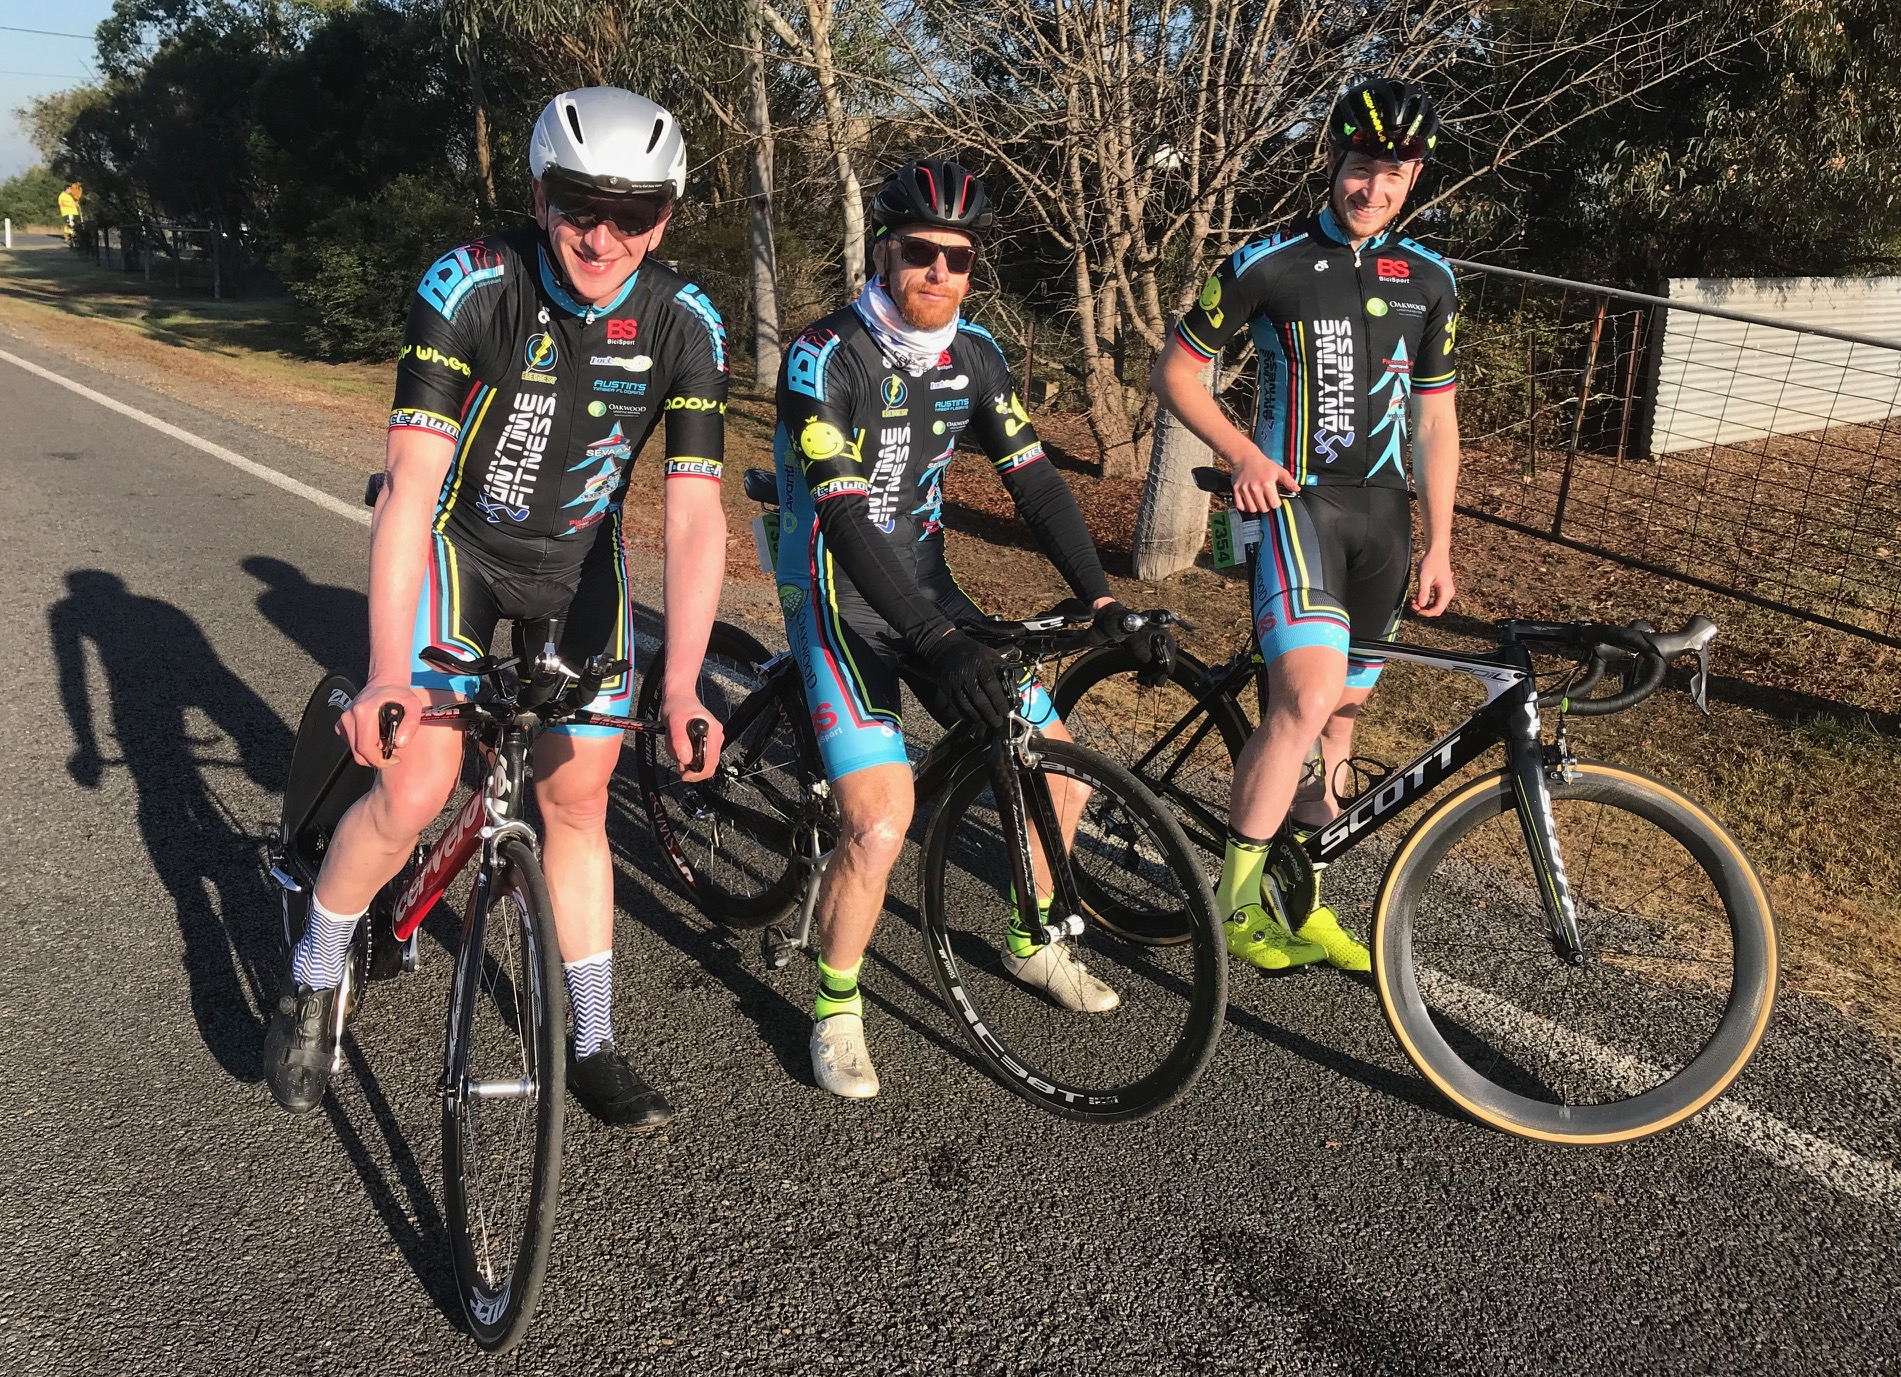 NSW Team Time Trial @ 3 August - L to R … Tom Green, Rhett Hall & Conor Tarlington finished 2nd in the Elite Mens Challenge. Conditions were ideal for the early morning start.